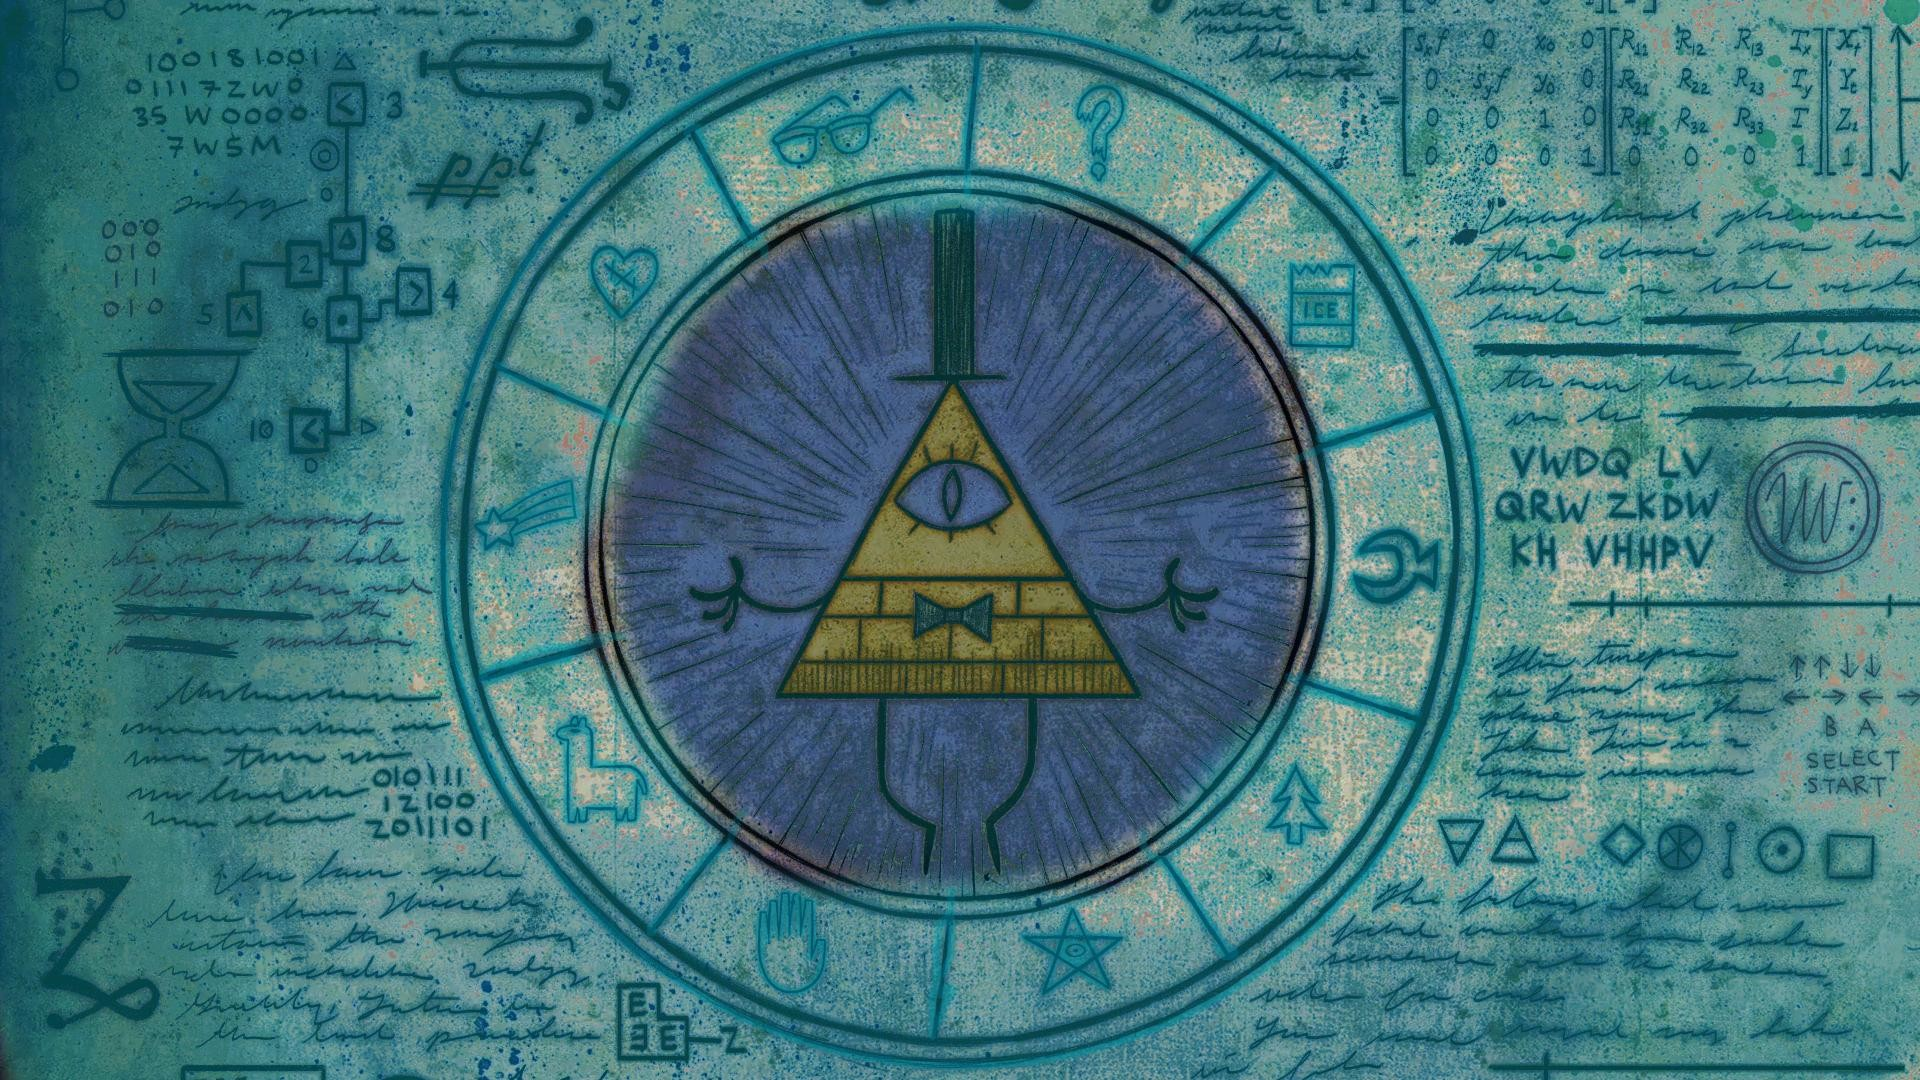 Gravity Falls Wallpaper Desktop Gravity Falls Hd Wallpaper 65 Images